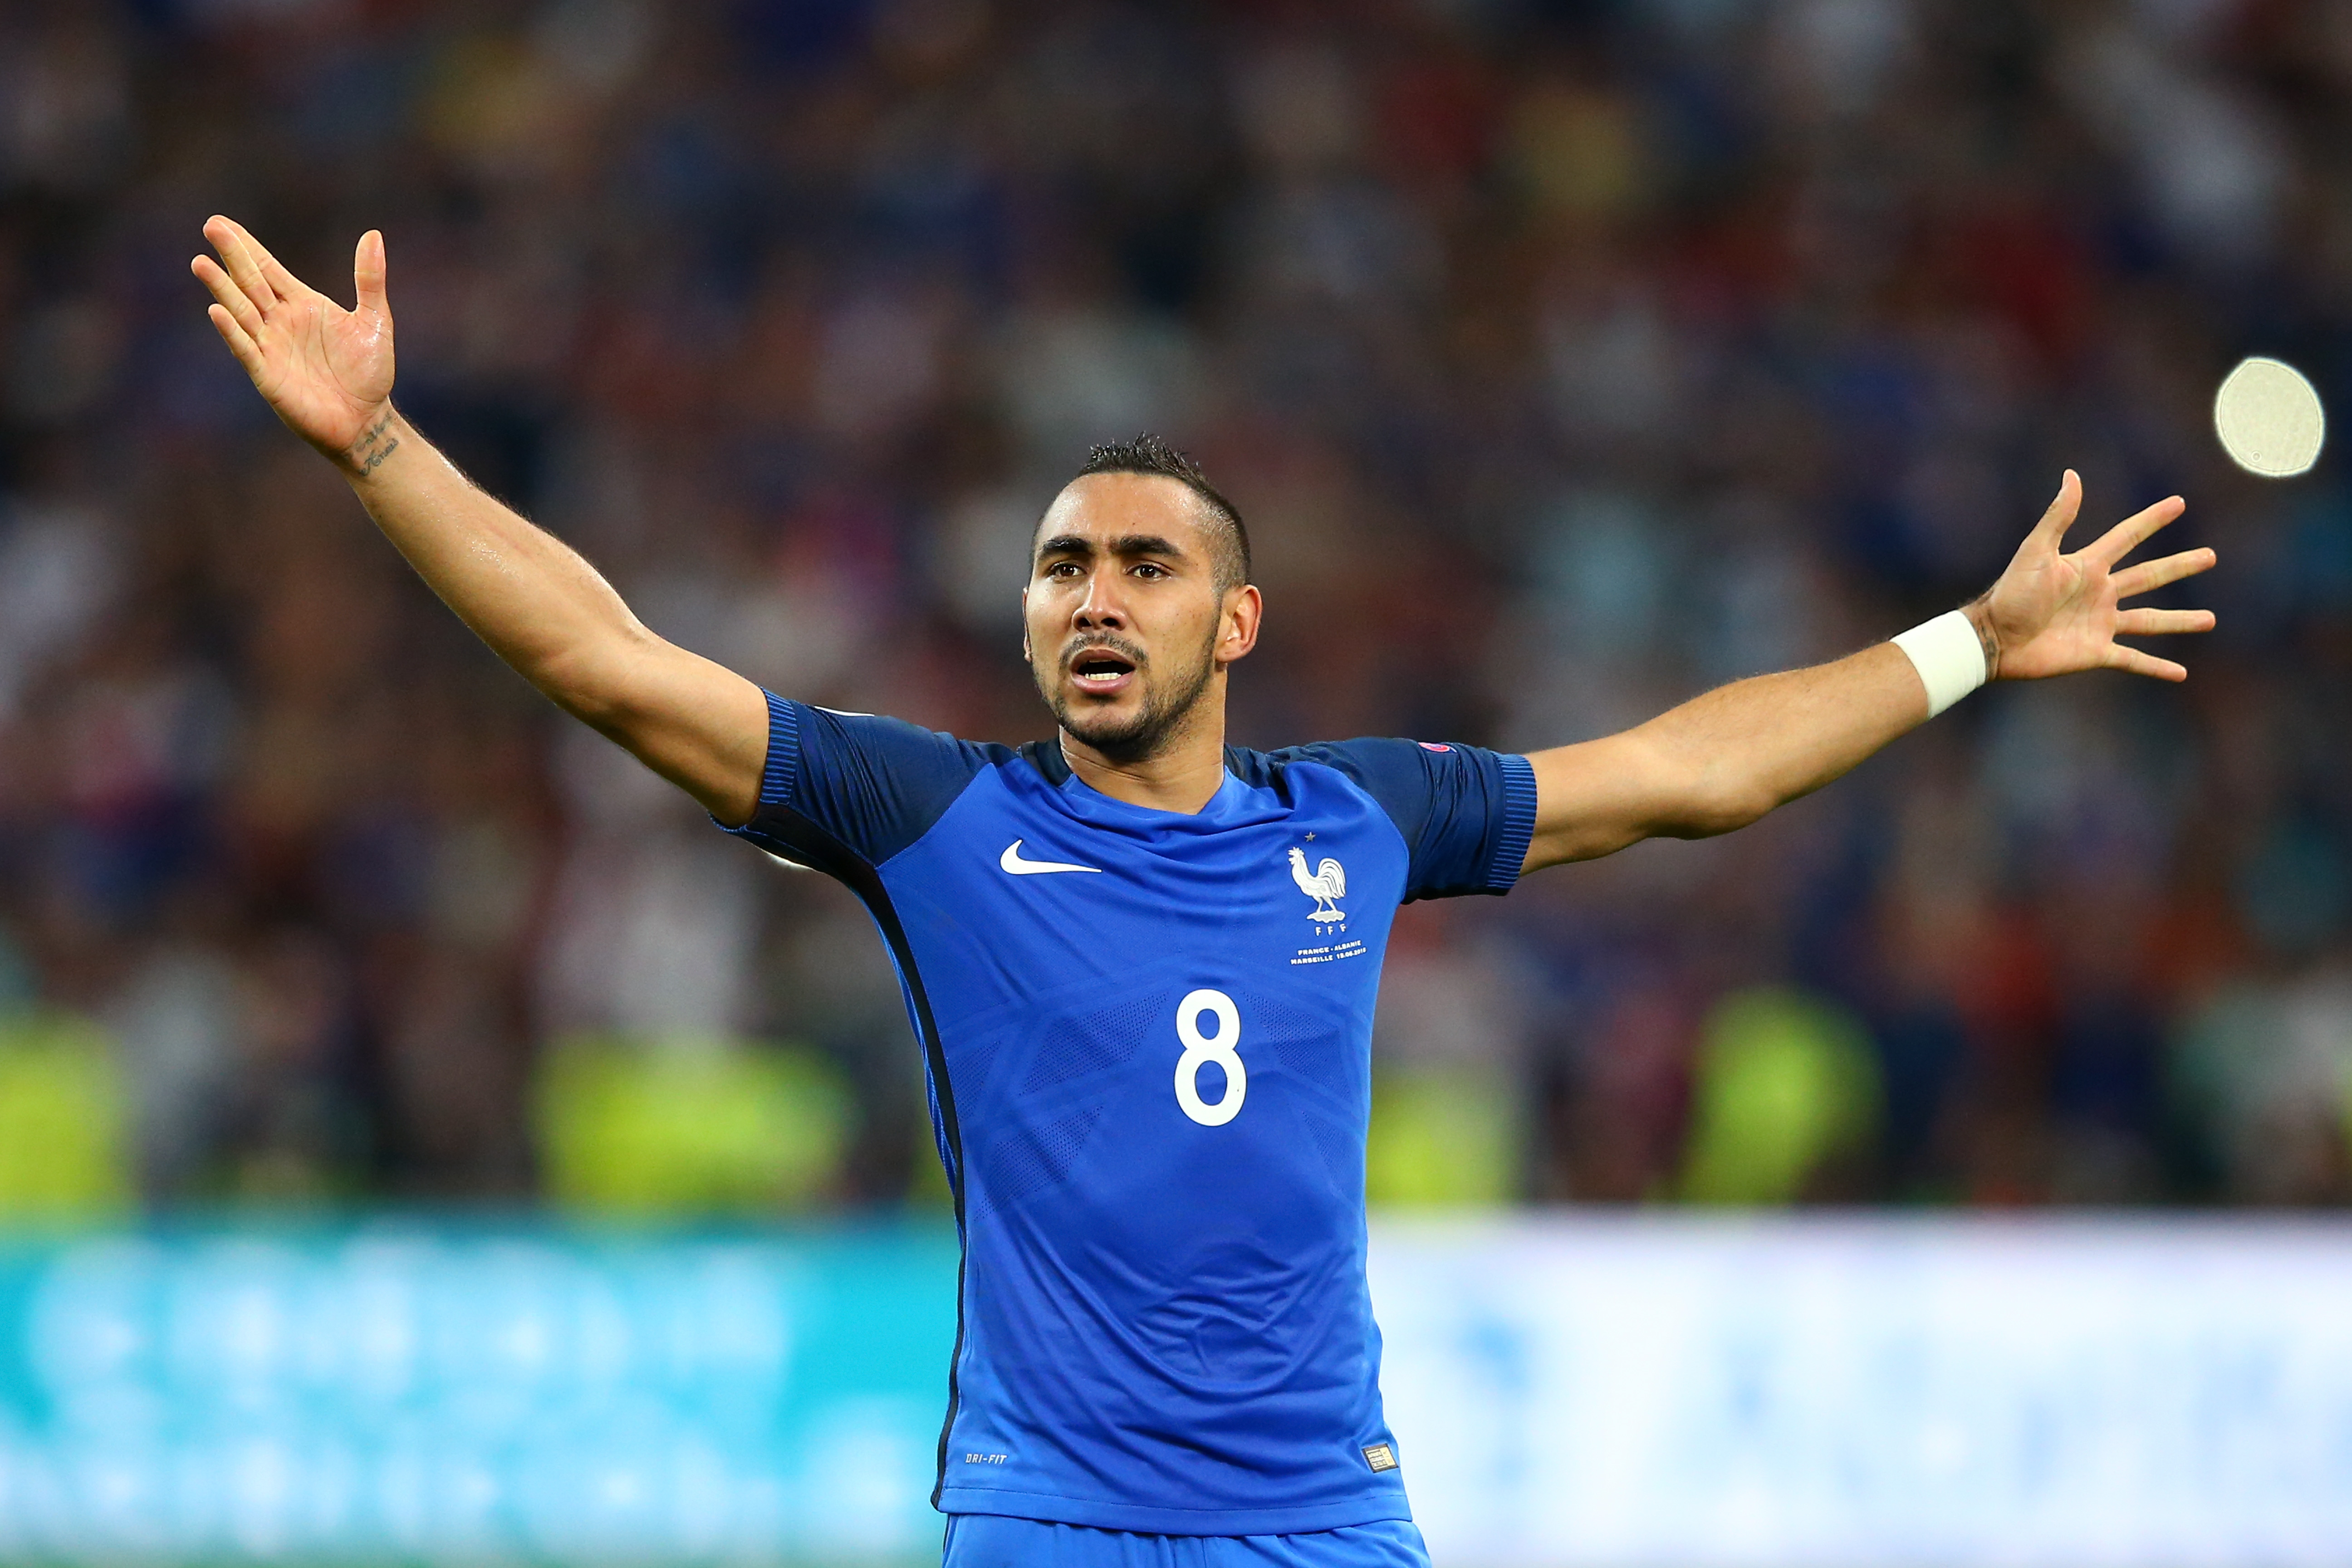 Switzerland vs France Euro 2016: Date, kick-off time, TV channel and odds